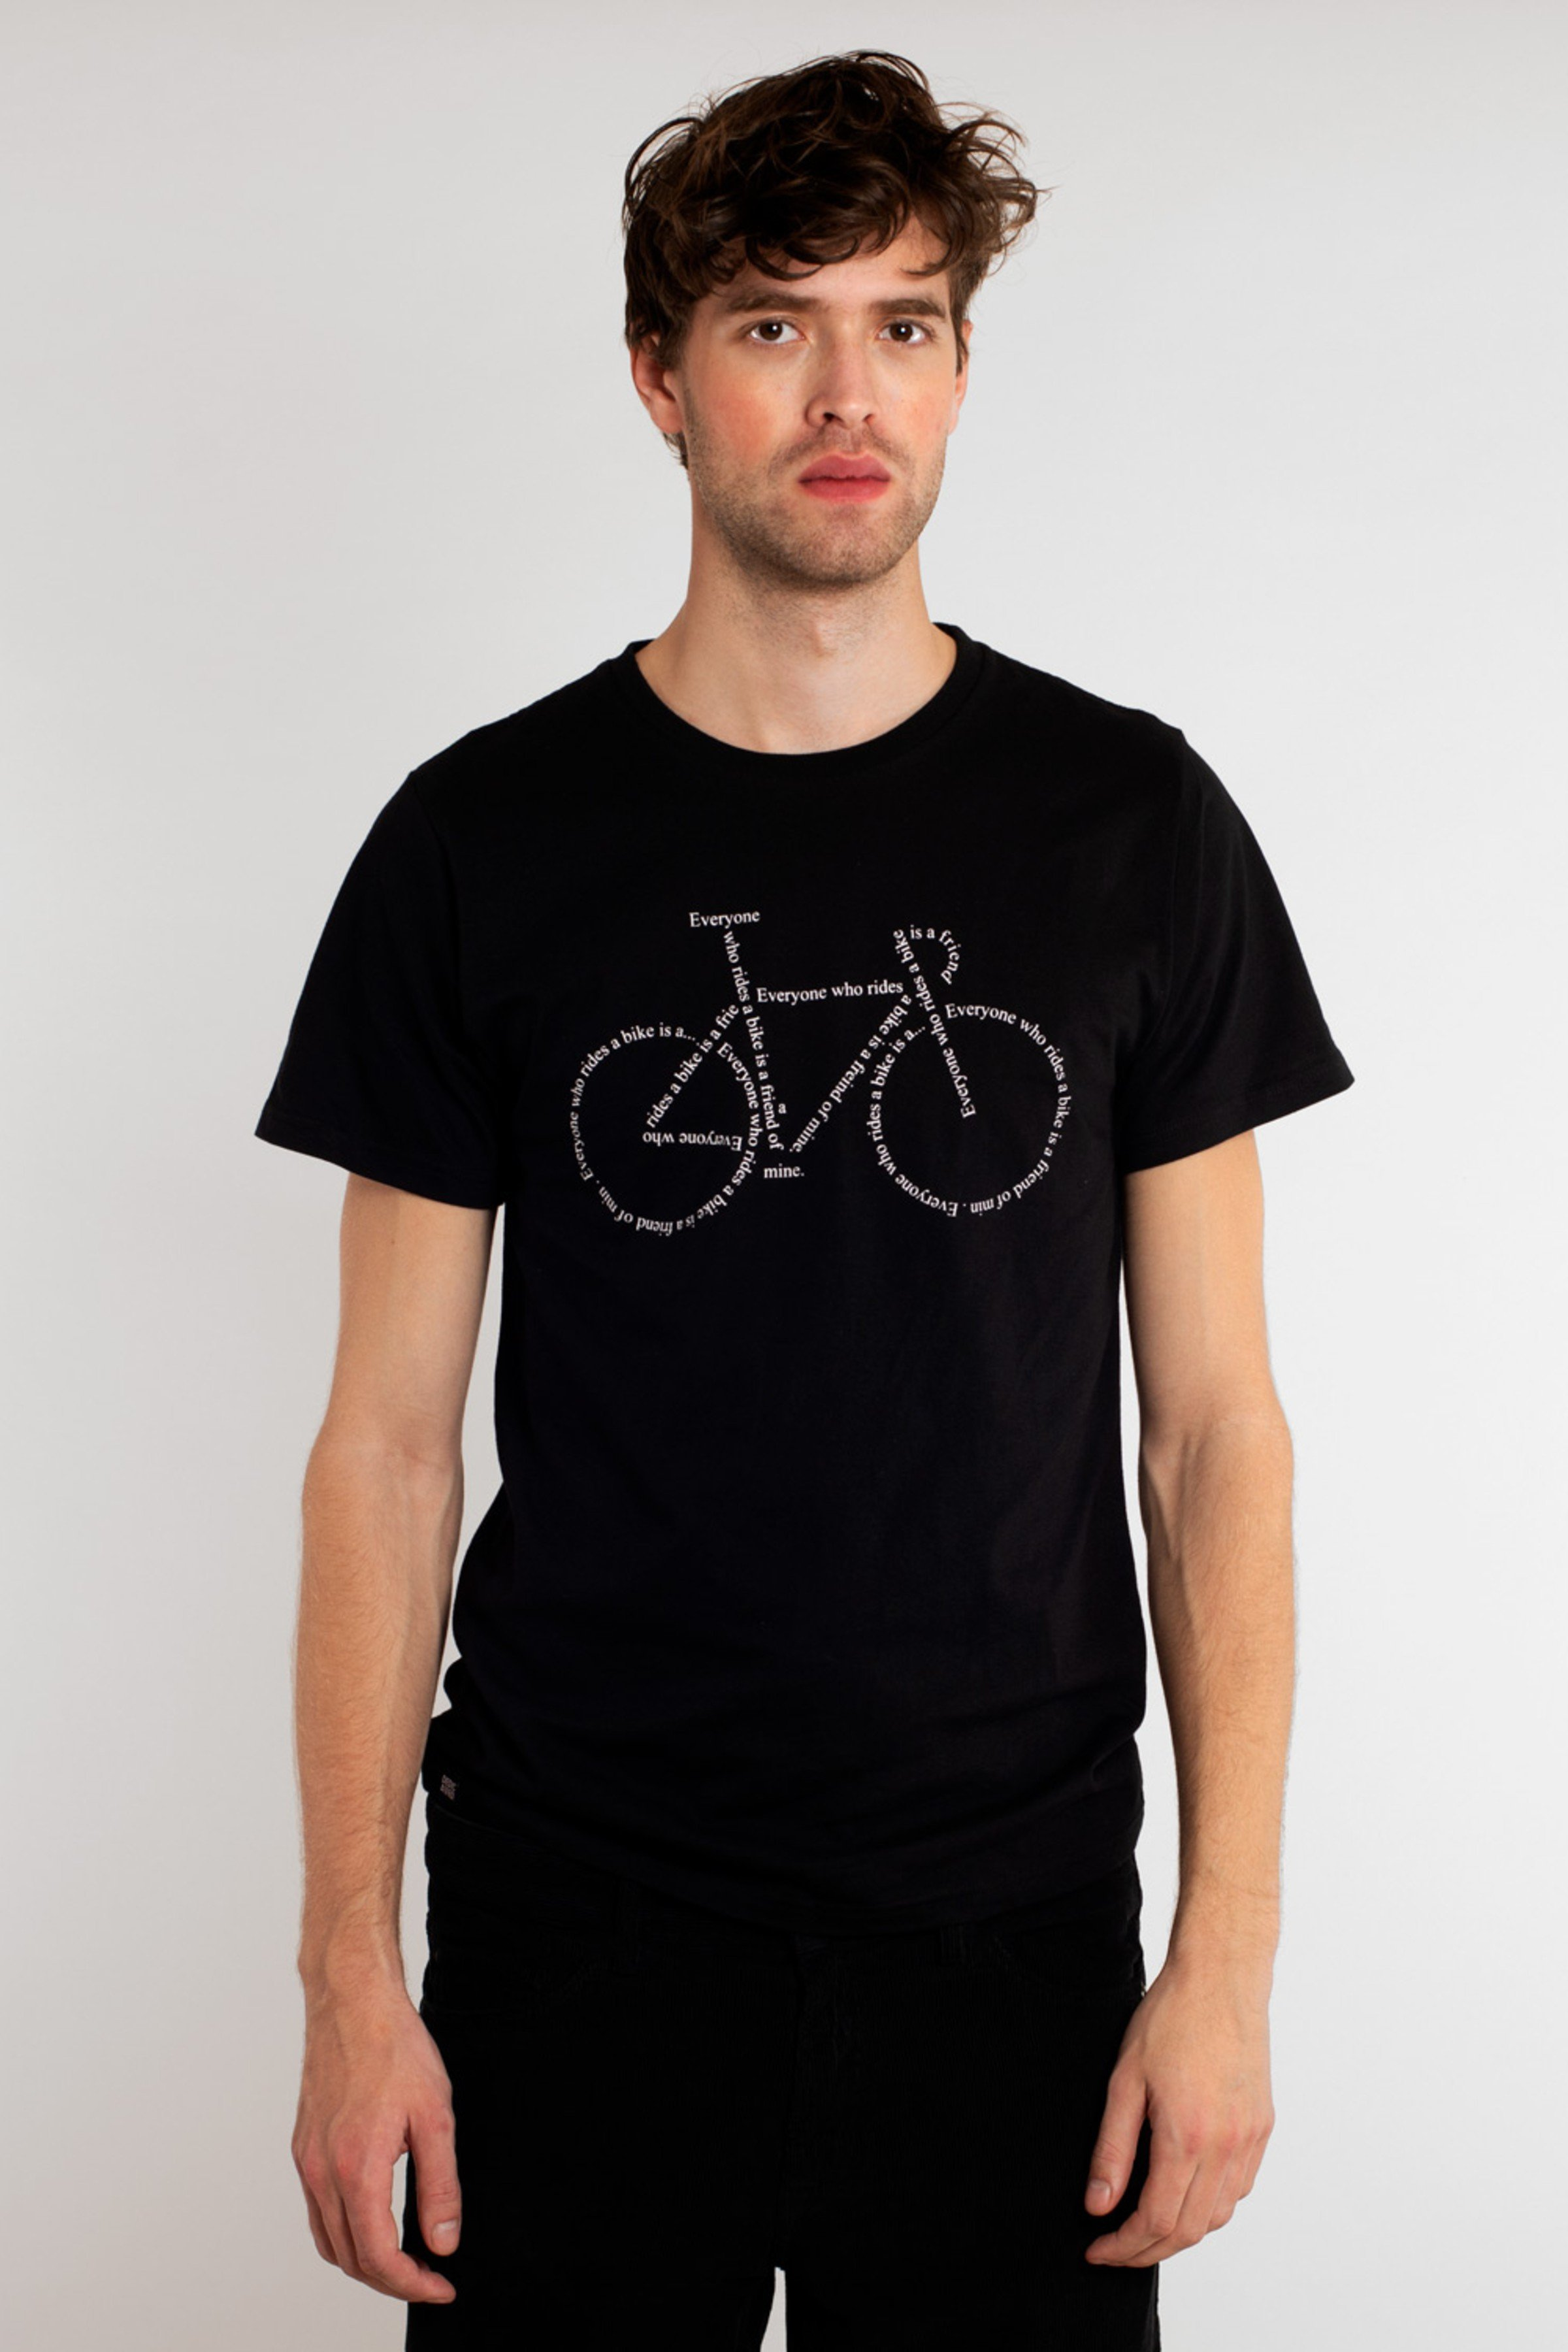 T-Shirt Stockholm Text Bike Schwarz from LOVECO